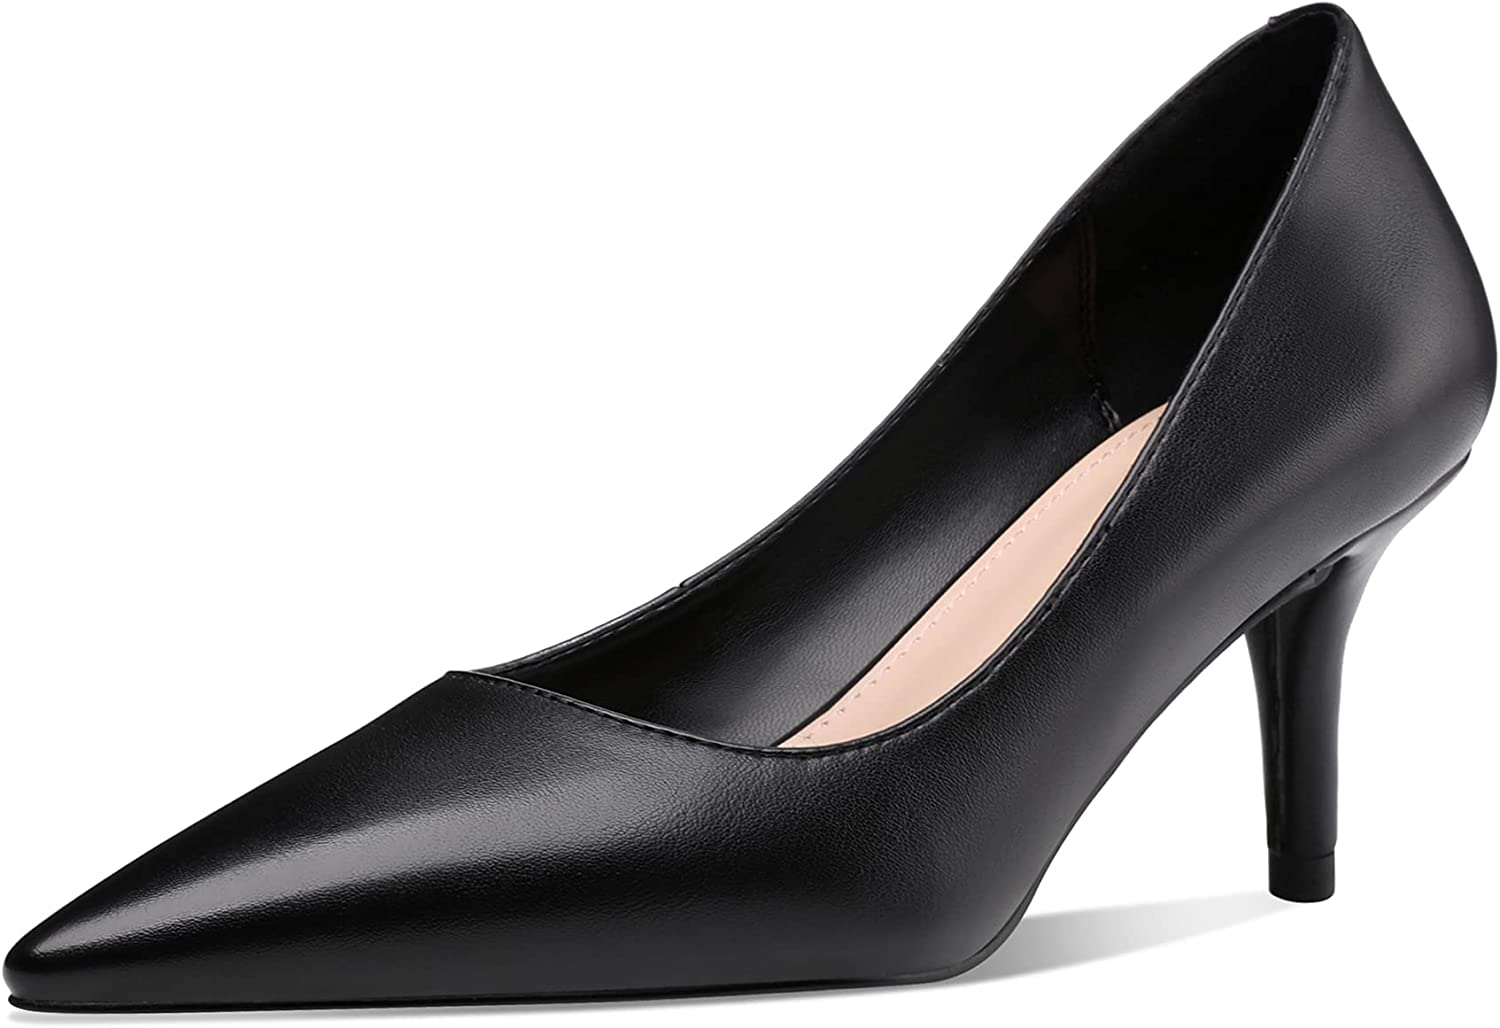 CosyFever Womens DC65 Slip On Low Cut Uppers Pointed Toe Pu Mid Stiletto Pumps